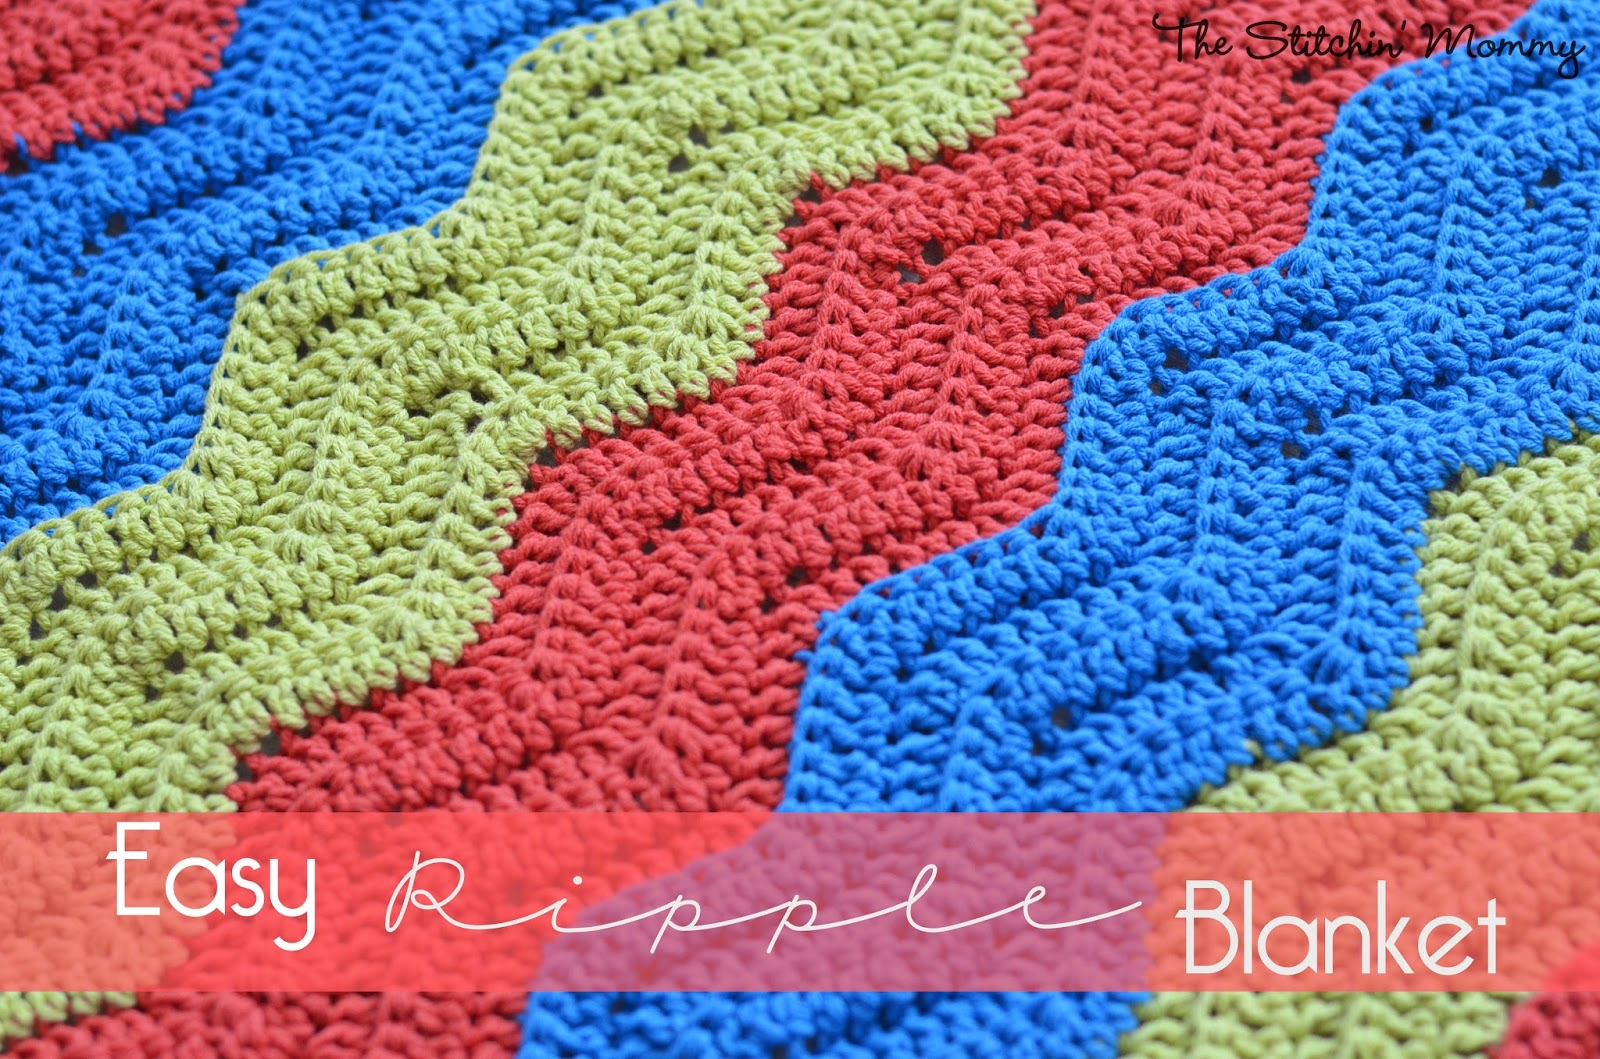 Easy Crochet Ripple Afghan Tutorial : Easy Crochet Ripple Blanket BlogHer